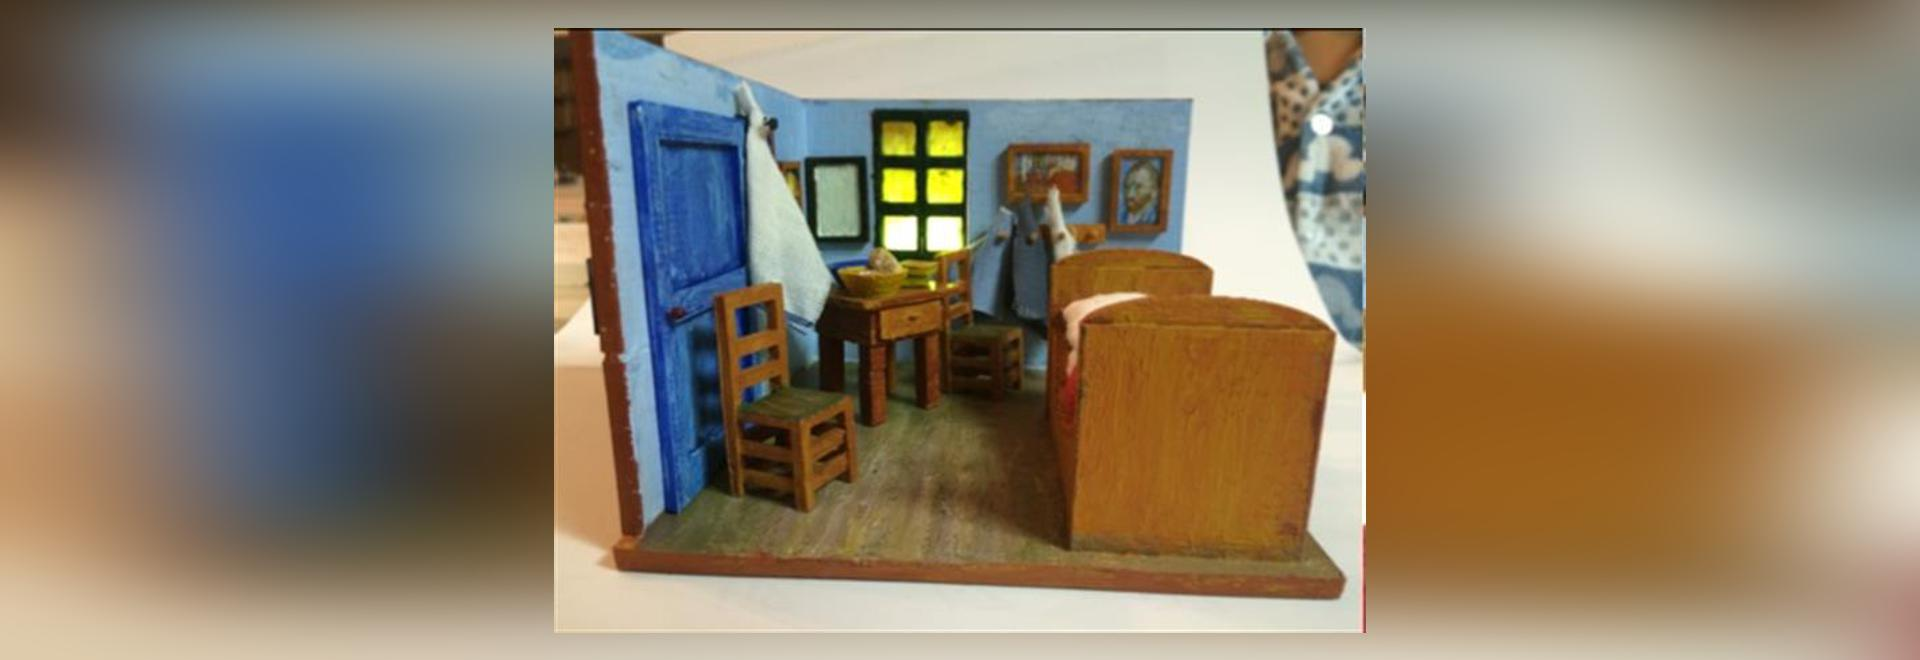 south korean father and son replicate van gogh's bedroom in arles